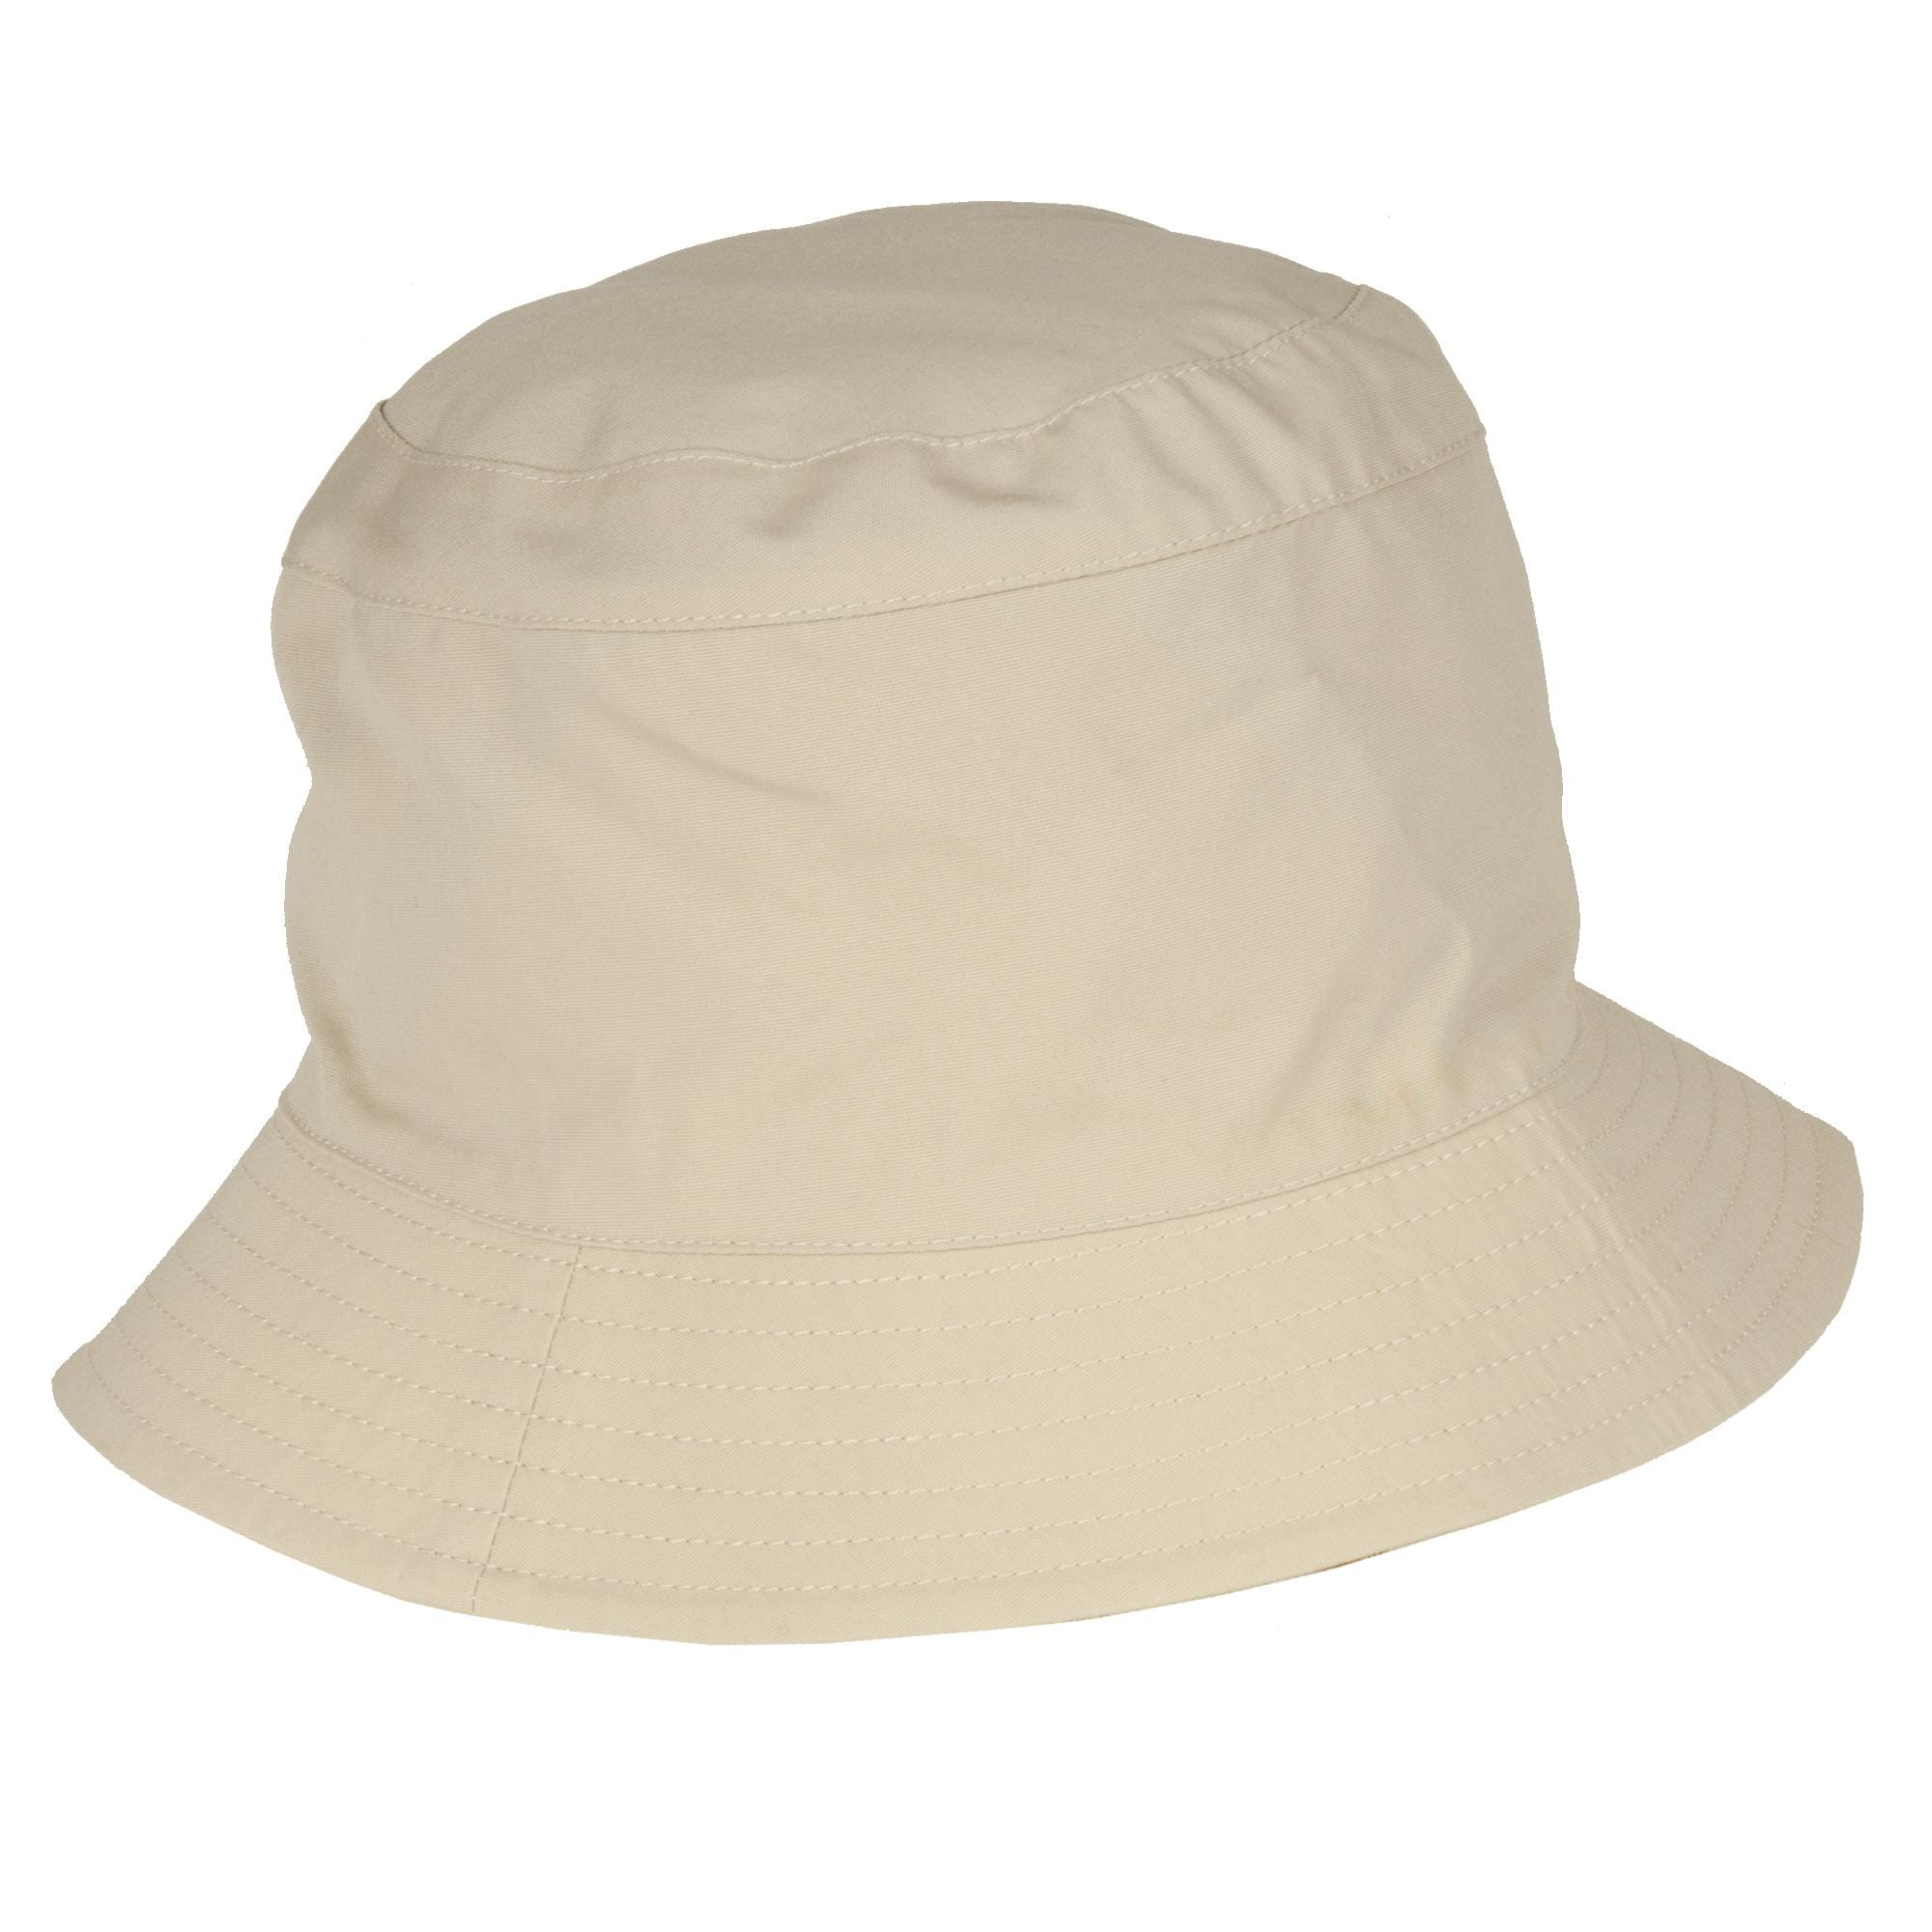 Shop Burberry Cotton Reversible Khaki Bucket Hat - Free Shipping Today -  Overstock - 5651056 3307c41aa05